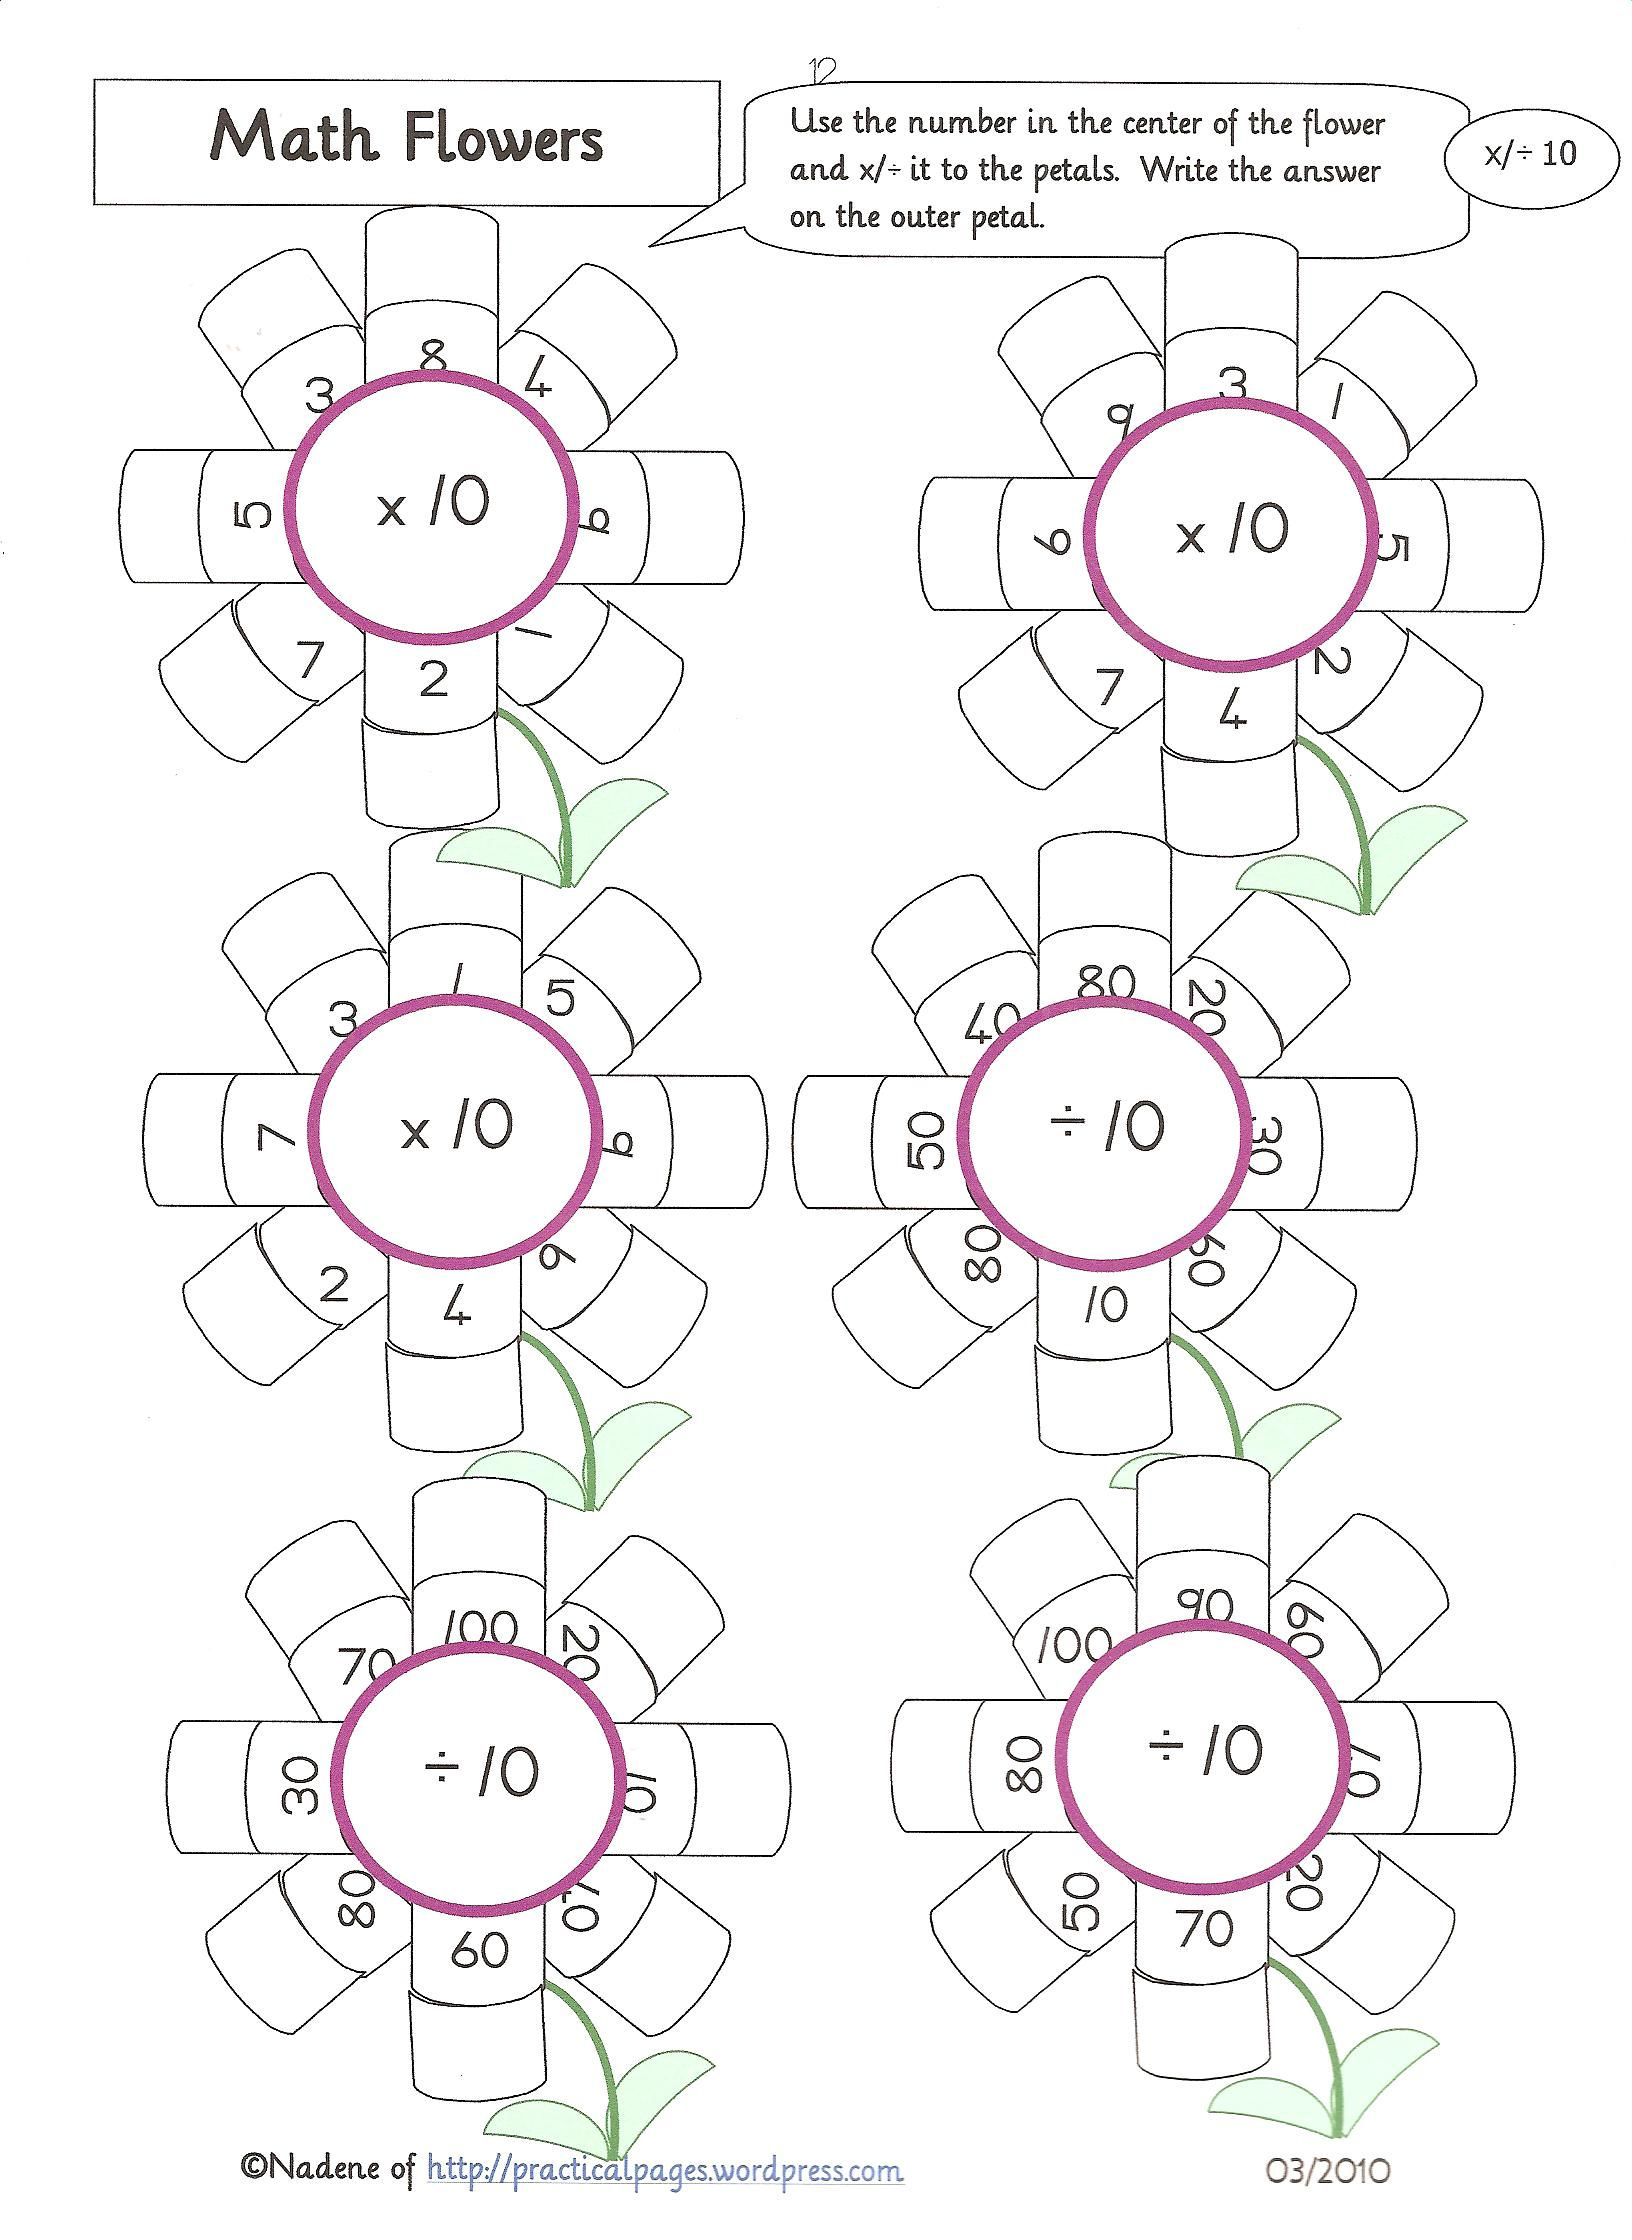 Blog Maths Flowers 005 In